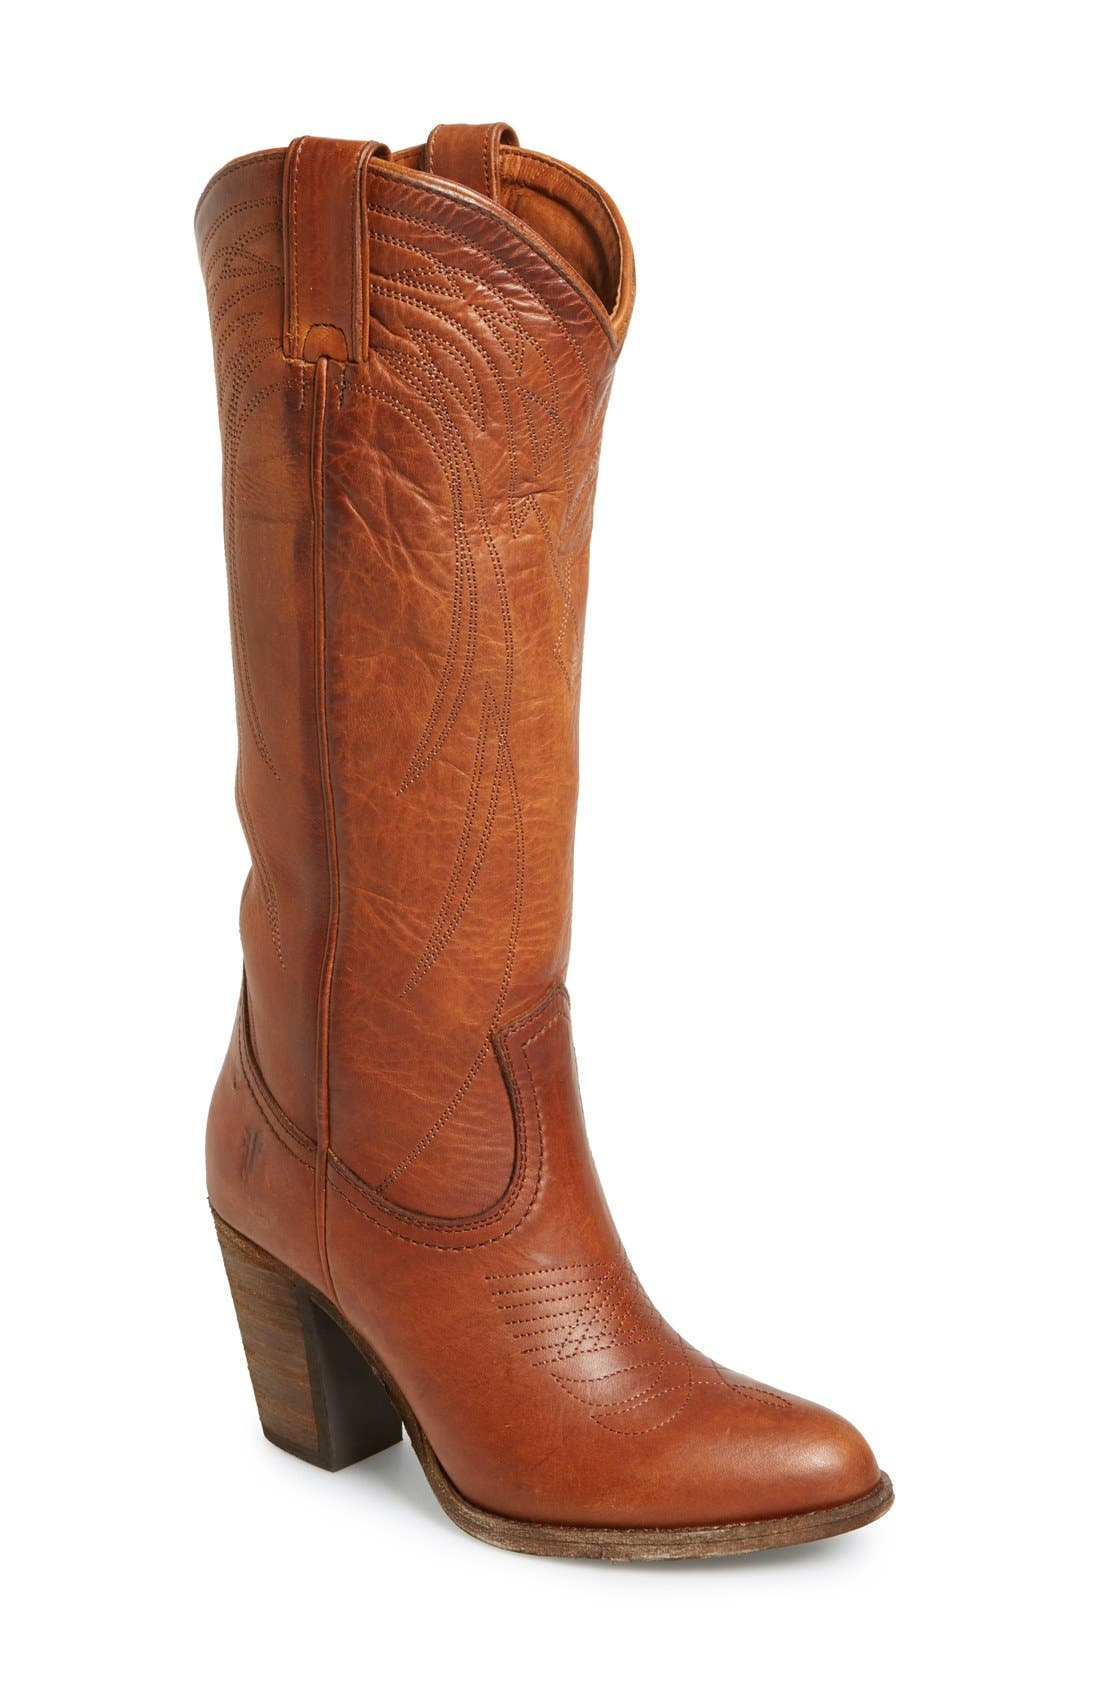 Alternate Image 1 Selected - Frye 'Ilana' Embroidered Leather Western Boot (Women)